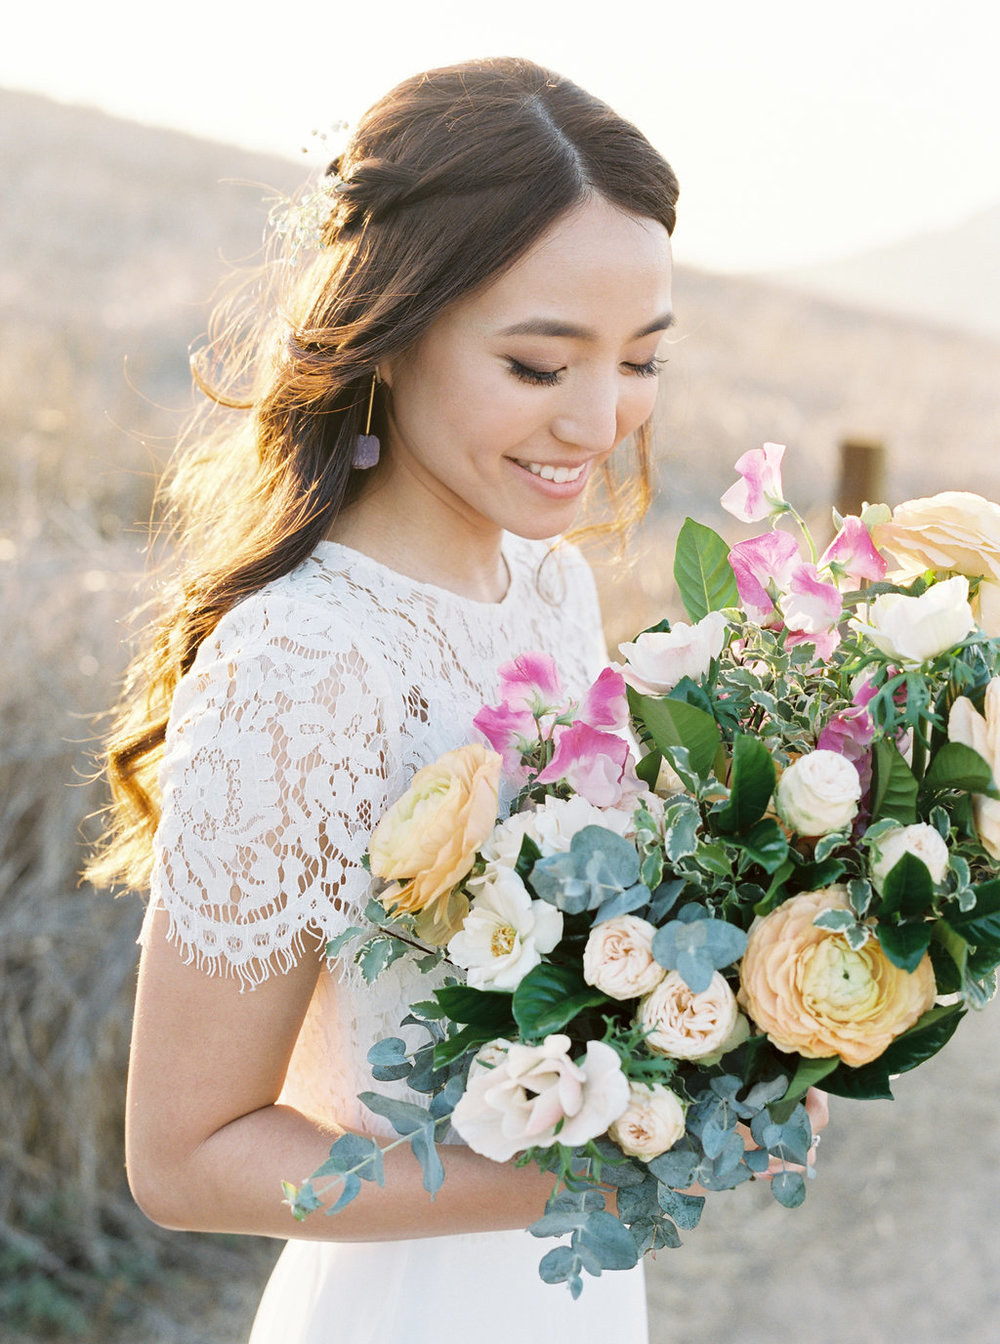 Dreamy golden hour field engagement photo session | Bouquet by Compass Floral | Wedding Florist in San Diego and Southern California | Meiwen Wang Photography    #gardenromantic       #sandiegowedding     #sandiegoweddingflorist       #orangecountyflorist     #floraldesign       #dreamwedding     #fineartwedding     #fineartflowers     #fineartcuration     #weddingdetails     #weddinginspiratio   n #engaged #engagementphotos #engagementphotooutfitinspiration #fieldphotos #dreamyphotos #goldenhour   #engagementphotobouquet